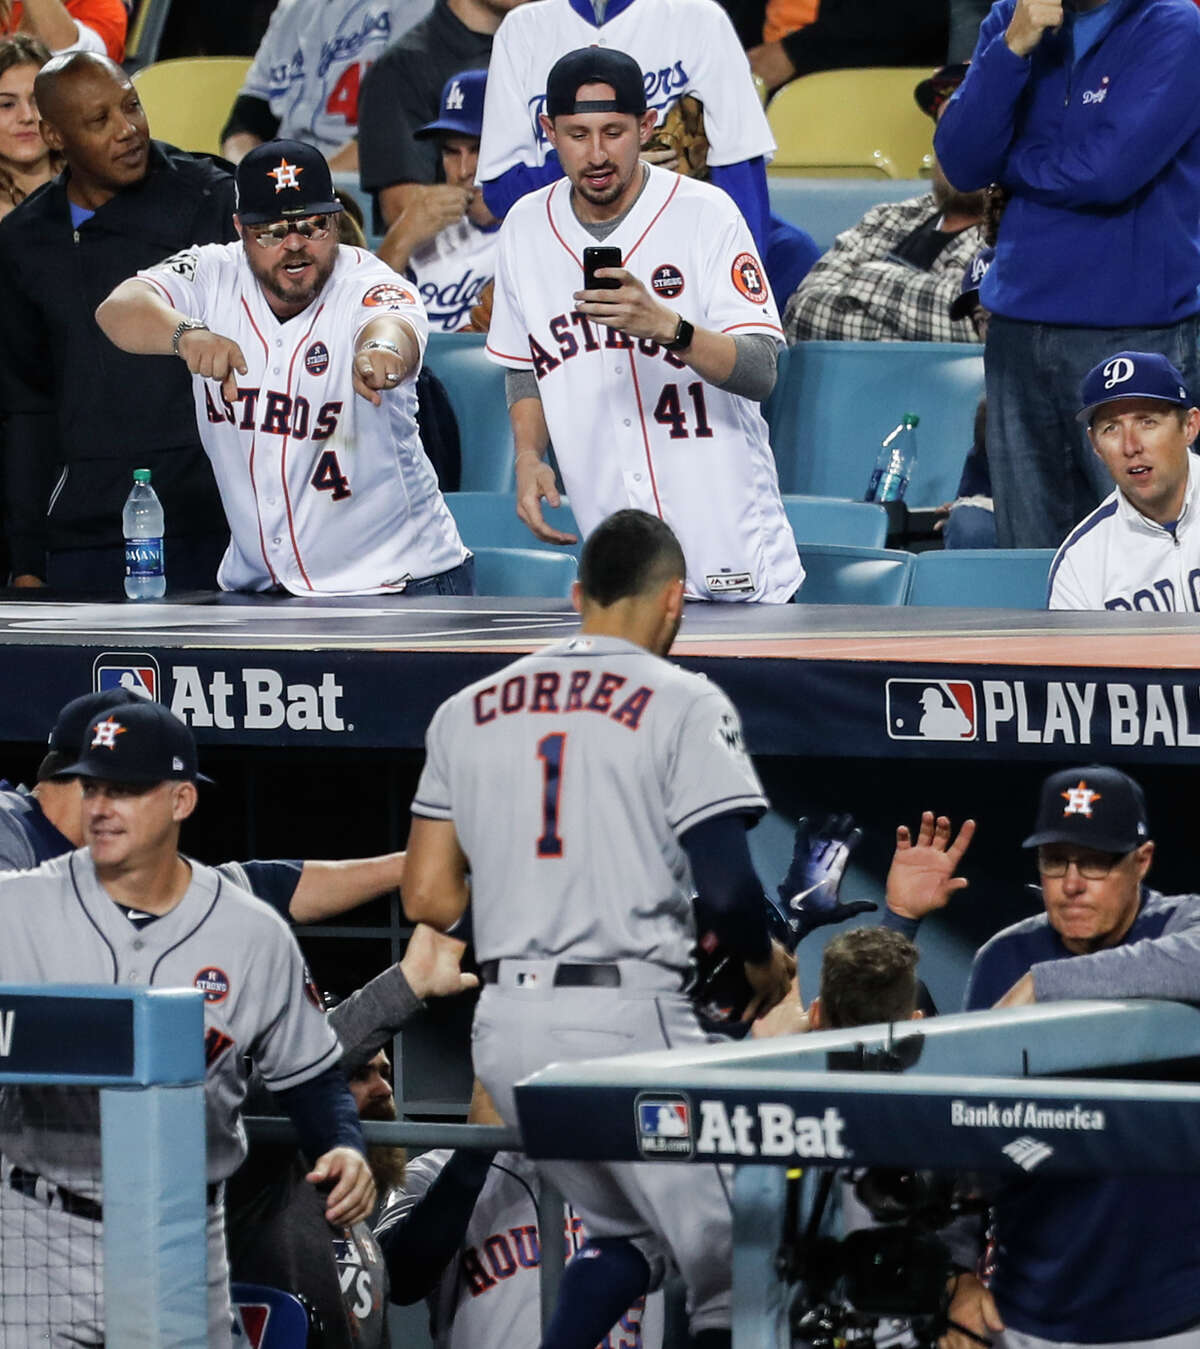 Houston Astros fans cheer after Houston Astros center fielder George Springer hit a solo home run off Los Angeles Dodgers starting pitcher Rich Hill during the third inning of Game 6 of the World Series at Dodger Stadium on Tuesday, Oct. 31, 2017, in Los Angeles.